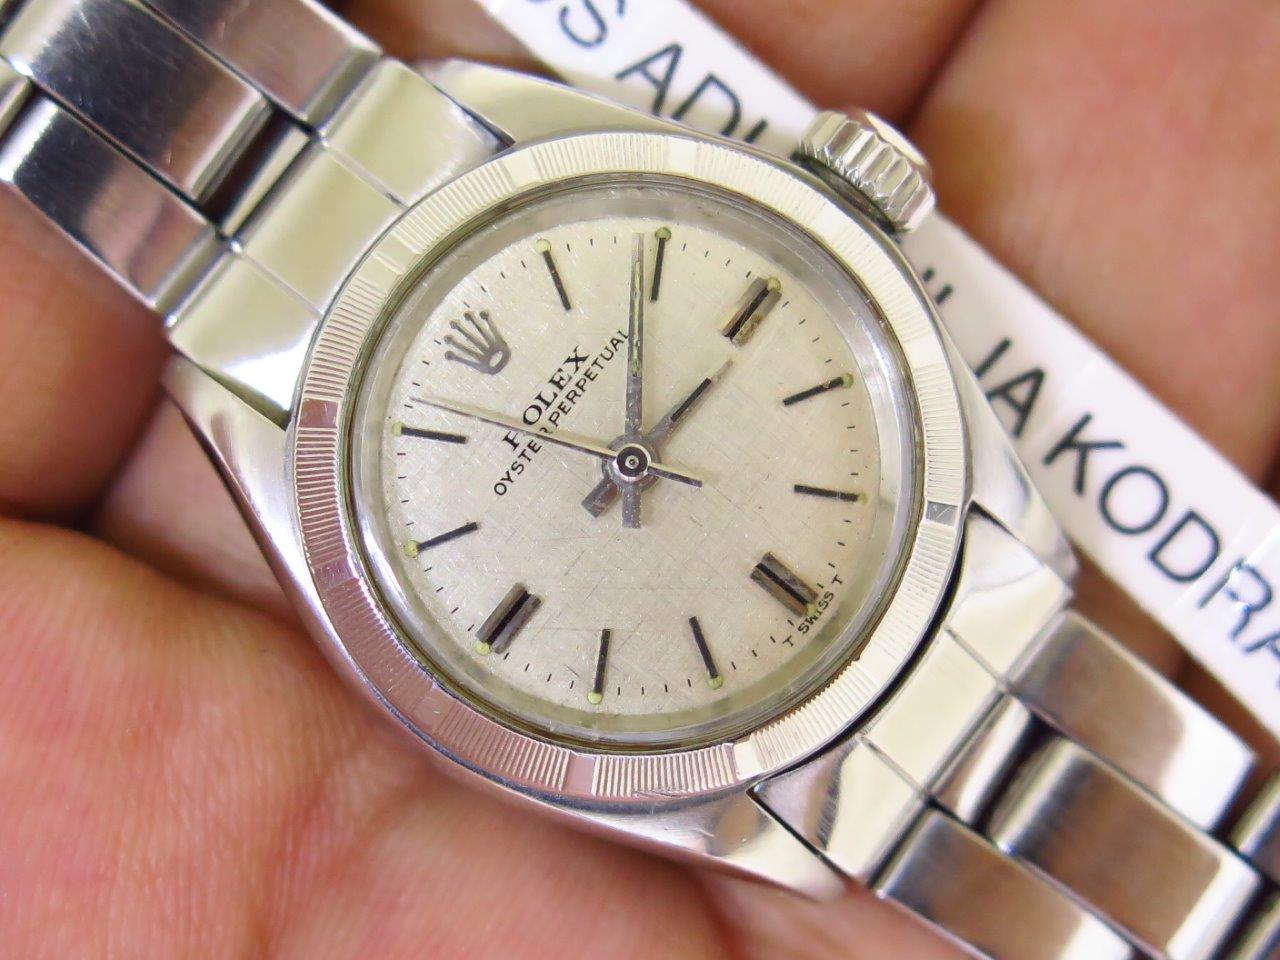 ROLEX OYSTER PERPETUAL SILVER LINEN DIAL LADY WATCH 26mm - ROLEX 6623